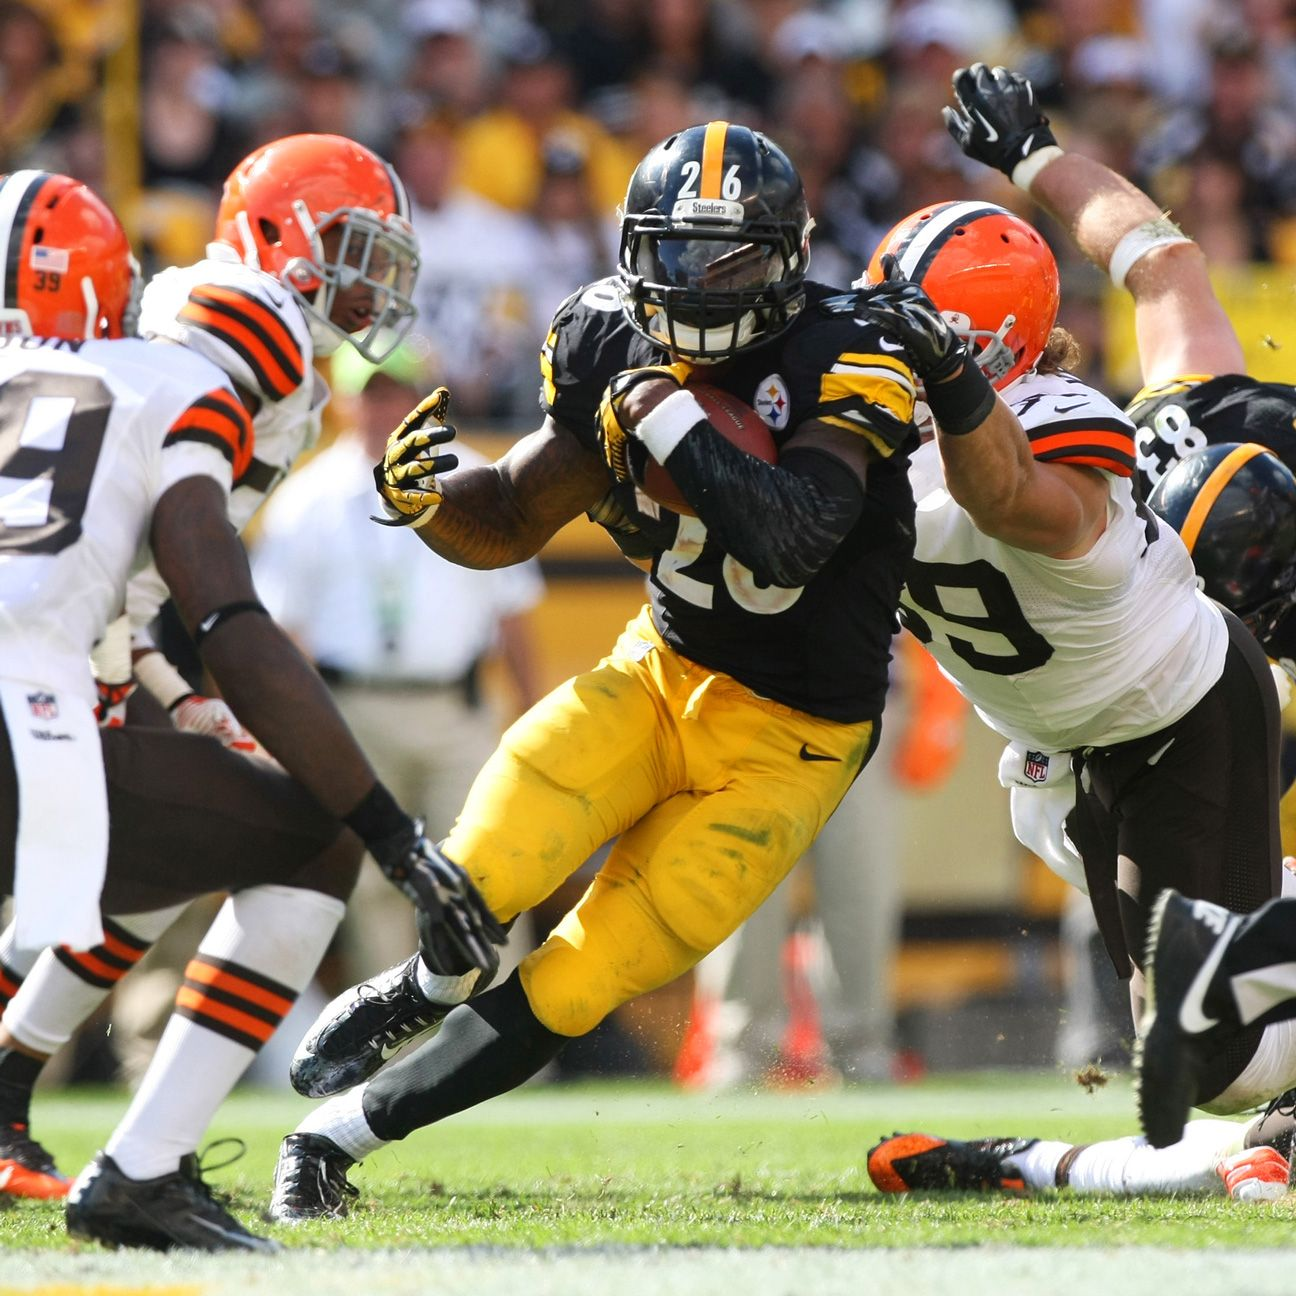 Steelers RB Le'Veon Bell close to 100 percent, waiting on